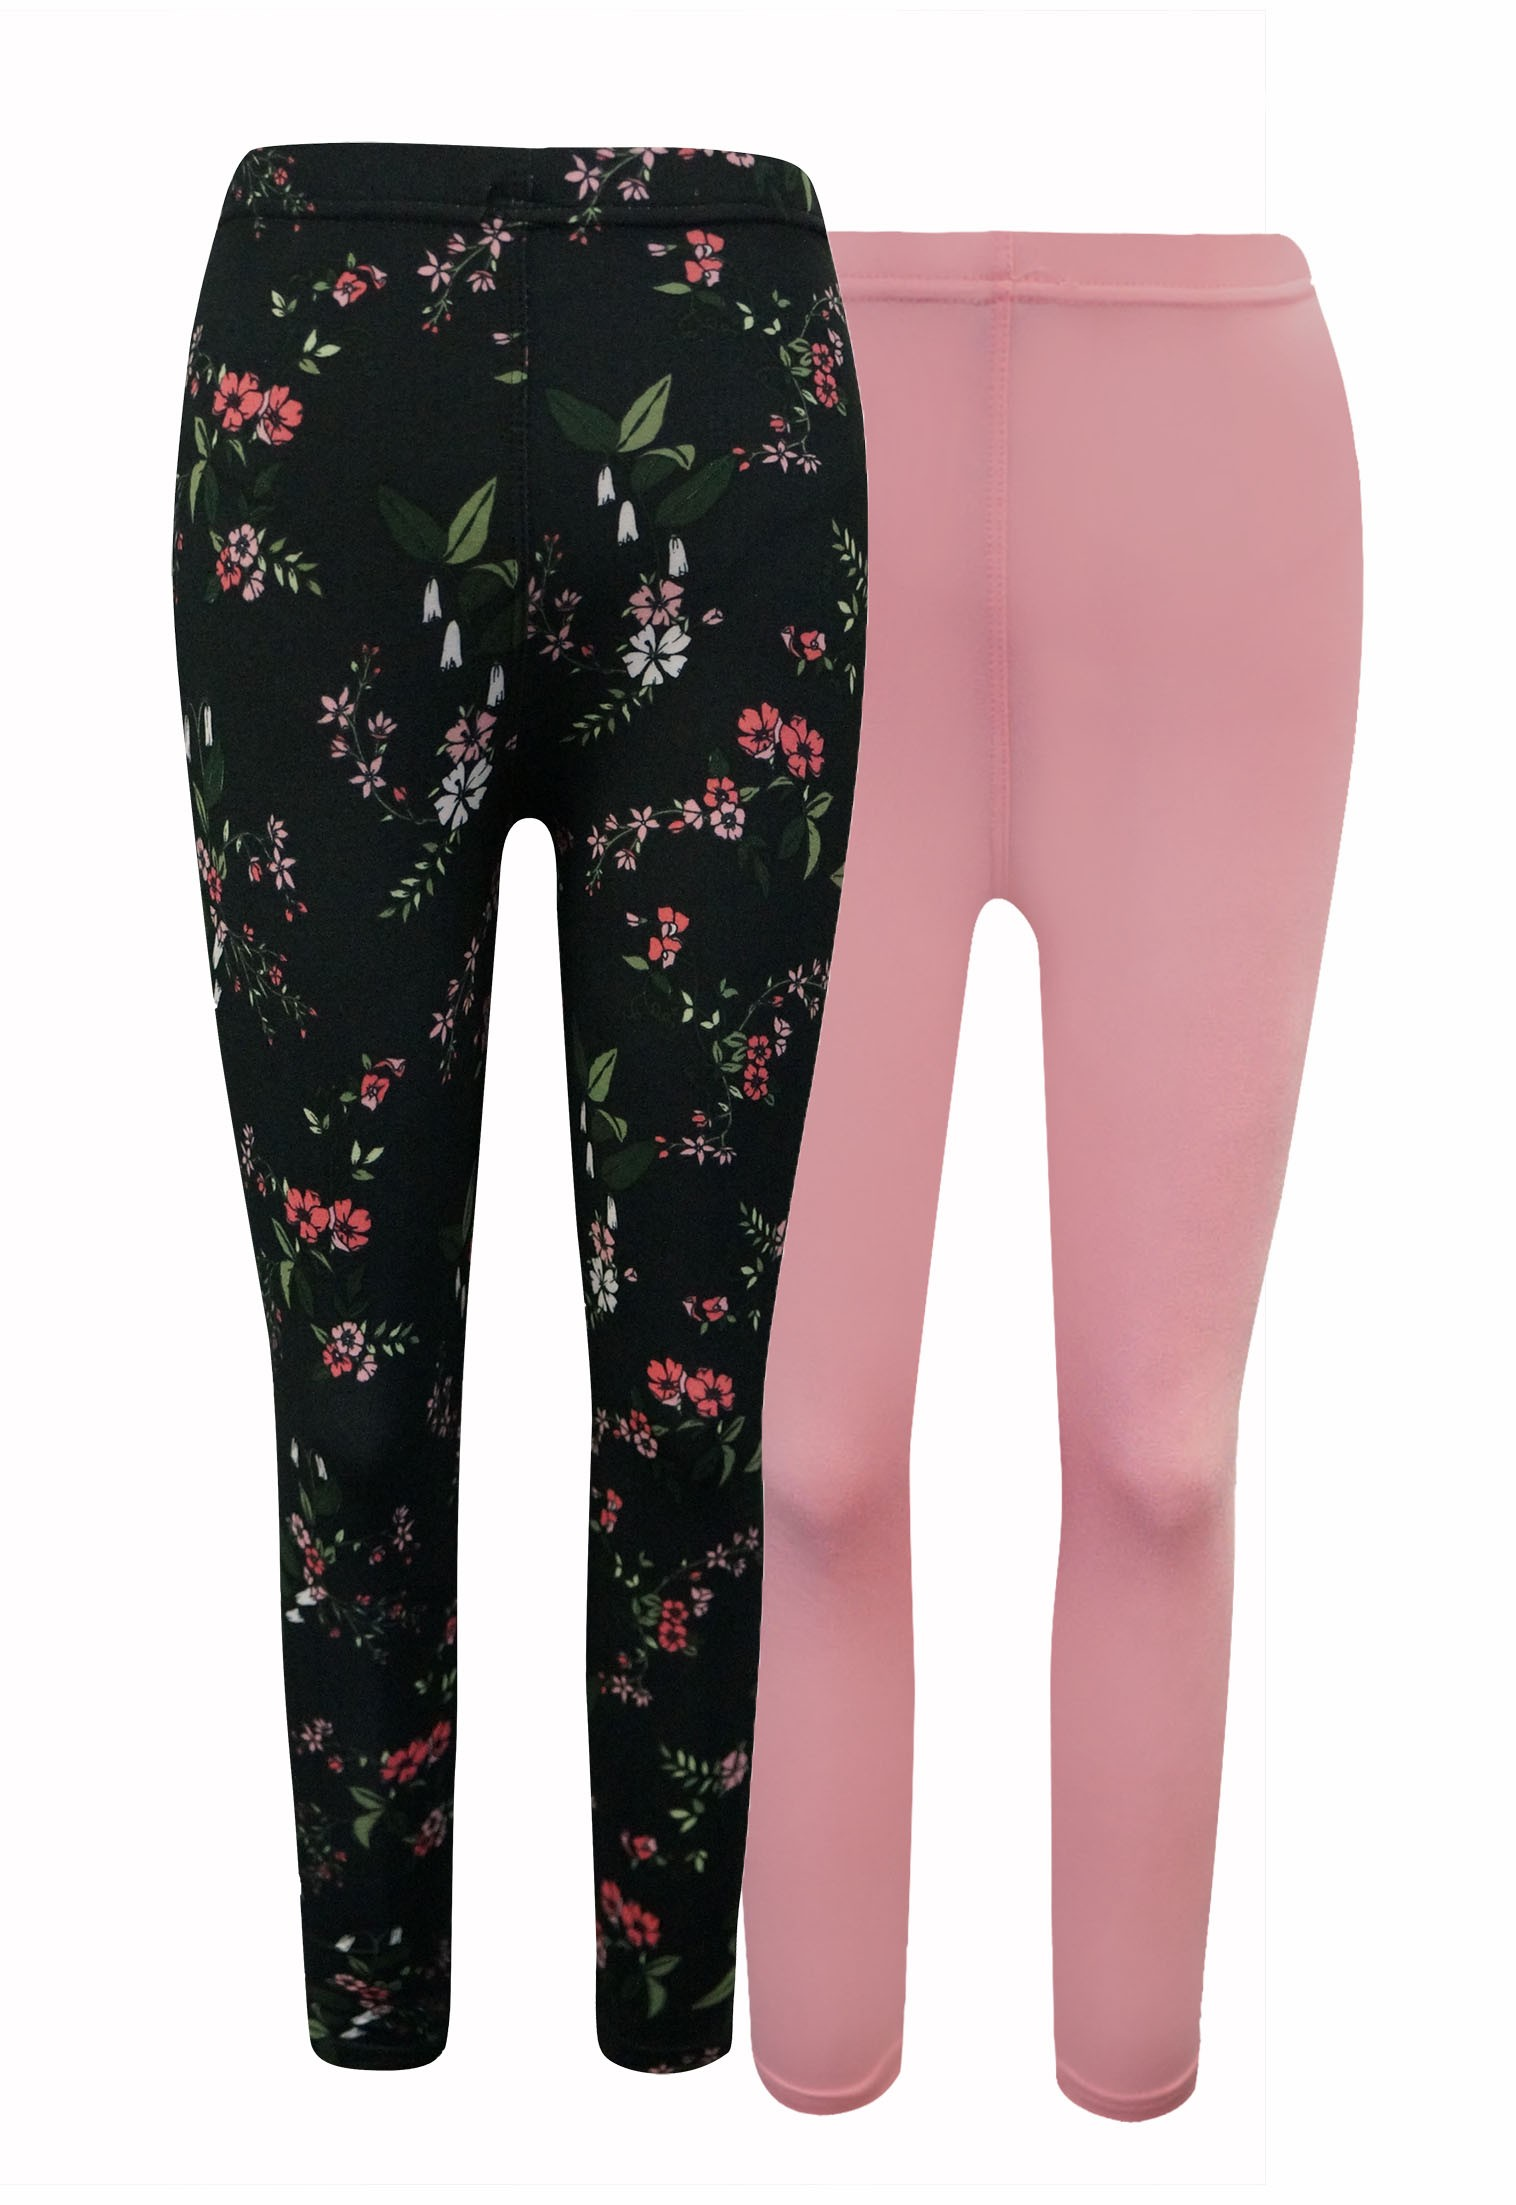 KIDS NAVY, PINK FLORAL PRINT BRUSH POLY LEGGING (2 PACK)(7/8, 10/12)#X2K8L54-09